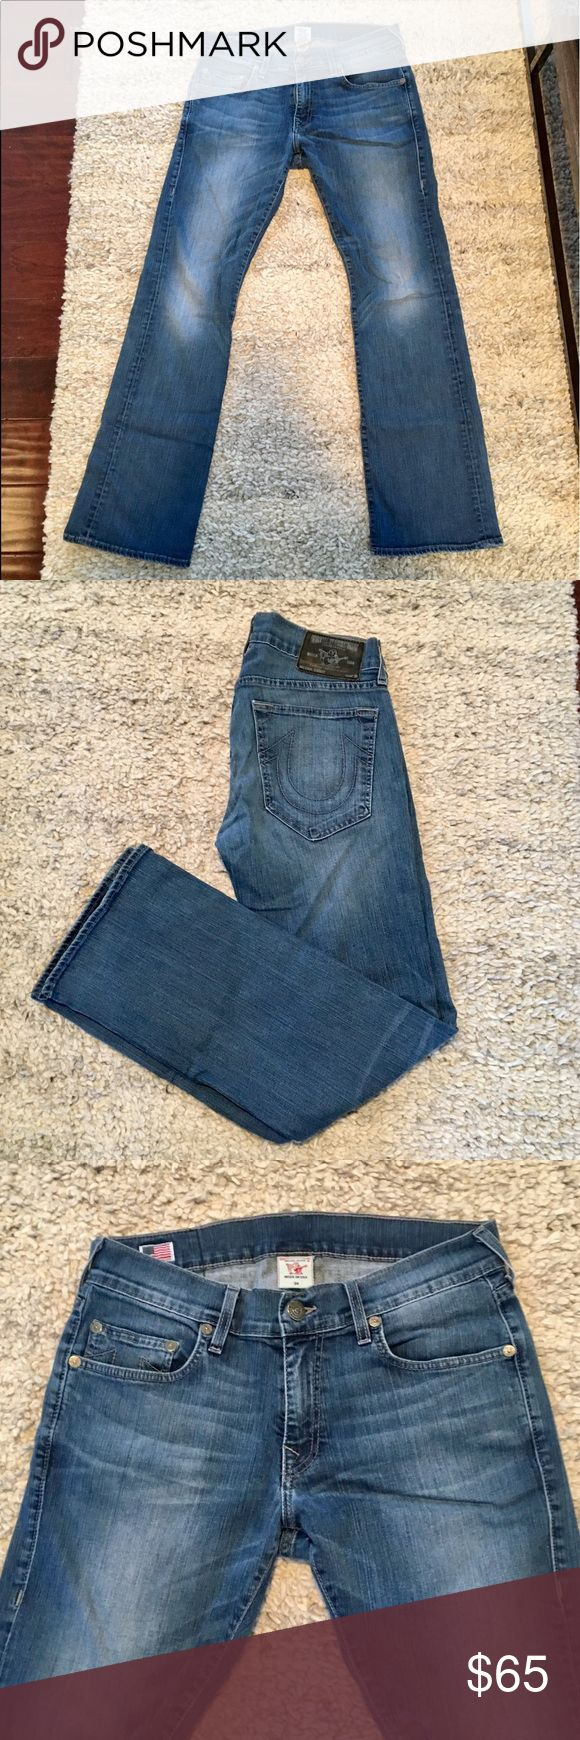 True Religion Section Danny Straight Cut Jeans Gently worn True Religion section danny, straight cut,  blue jean. True Religion Jeans Straight